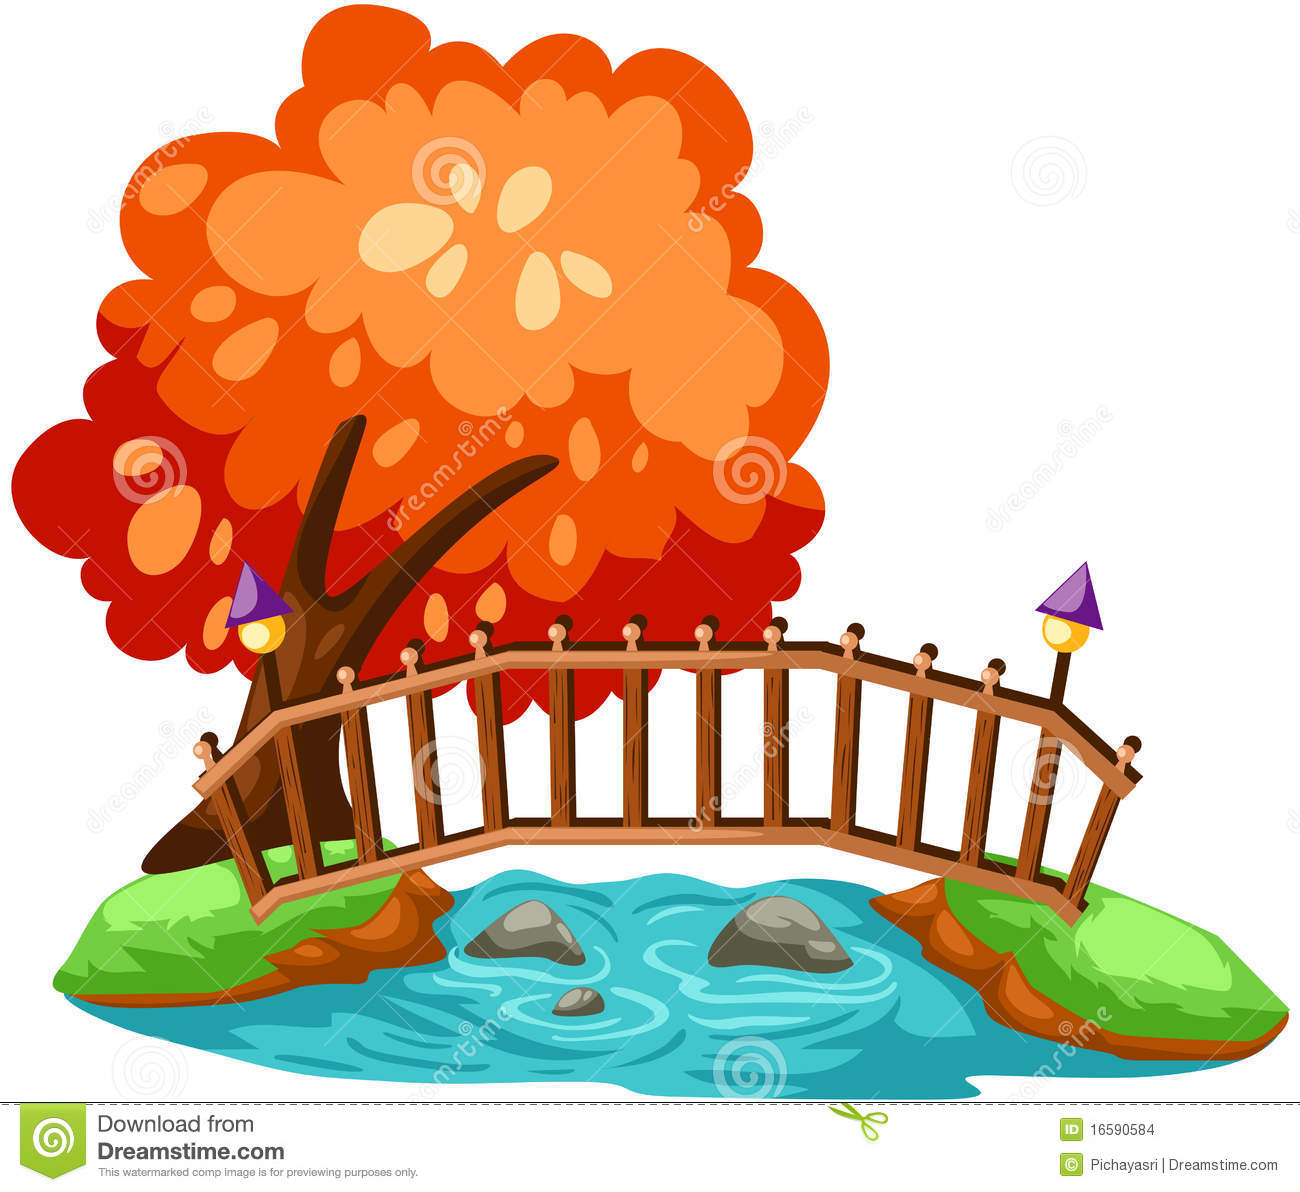 Galleries Related: Foot Bridge Clip Art , Wooden Bridge Cartoon ,